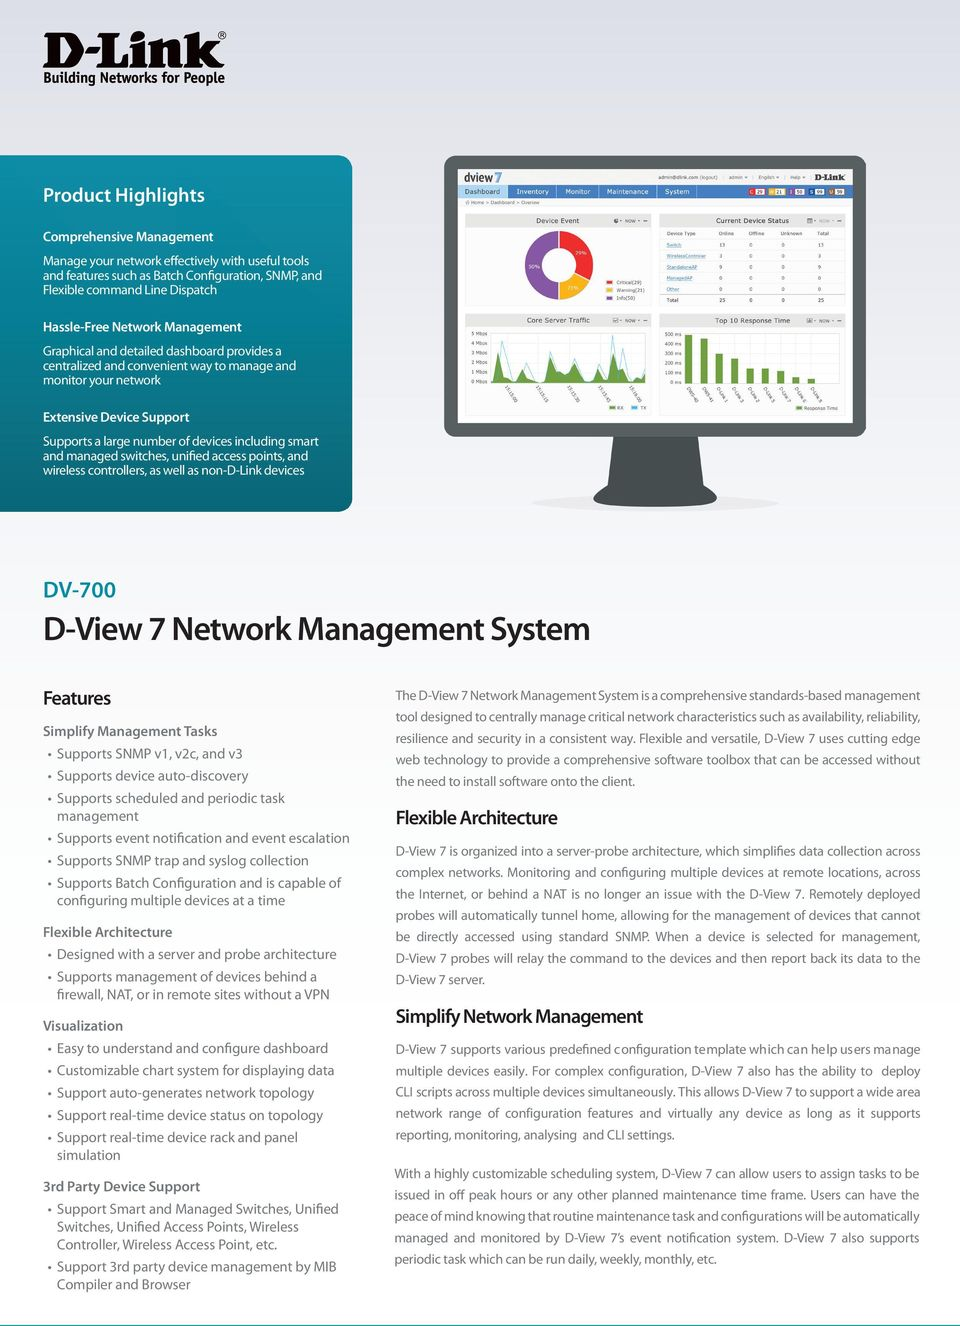 and managed switches, unified access points, and wireless controllers, as well as non-d-link devices DV-700 D-View 7 Network Management System Features Simplify Management Tasks Supports SNMP v1,